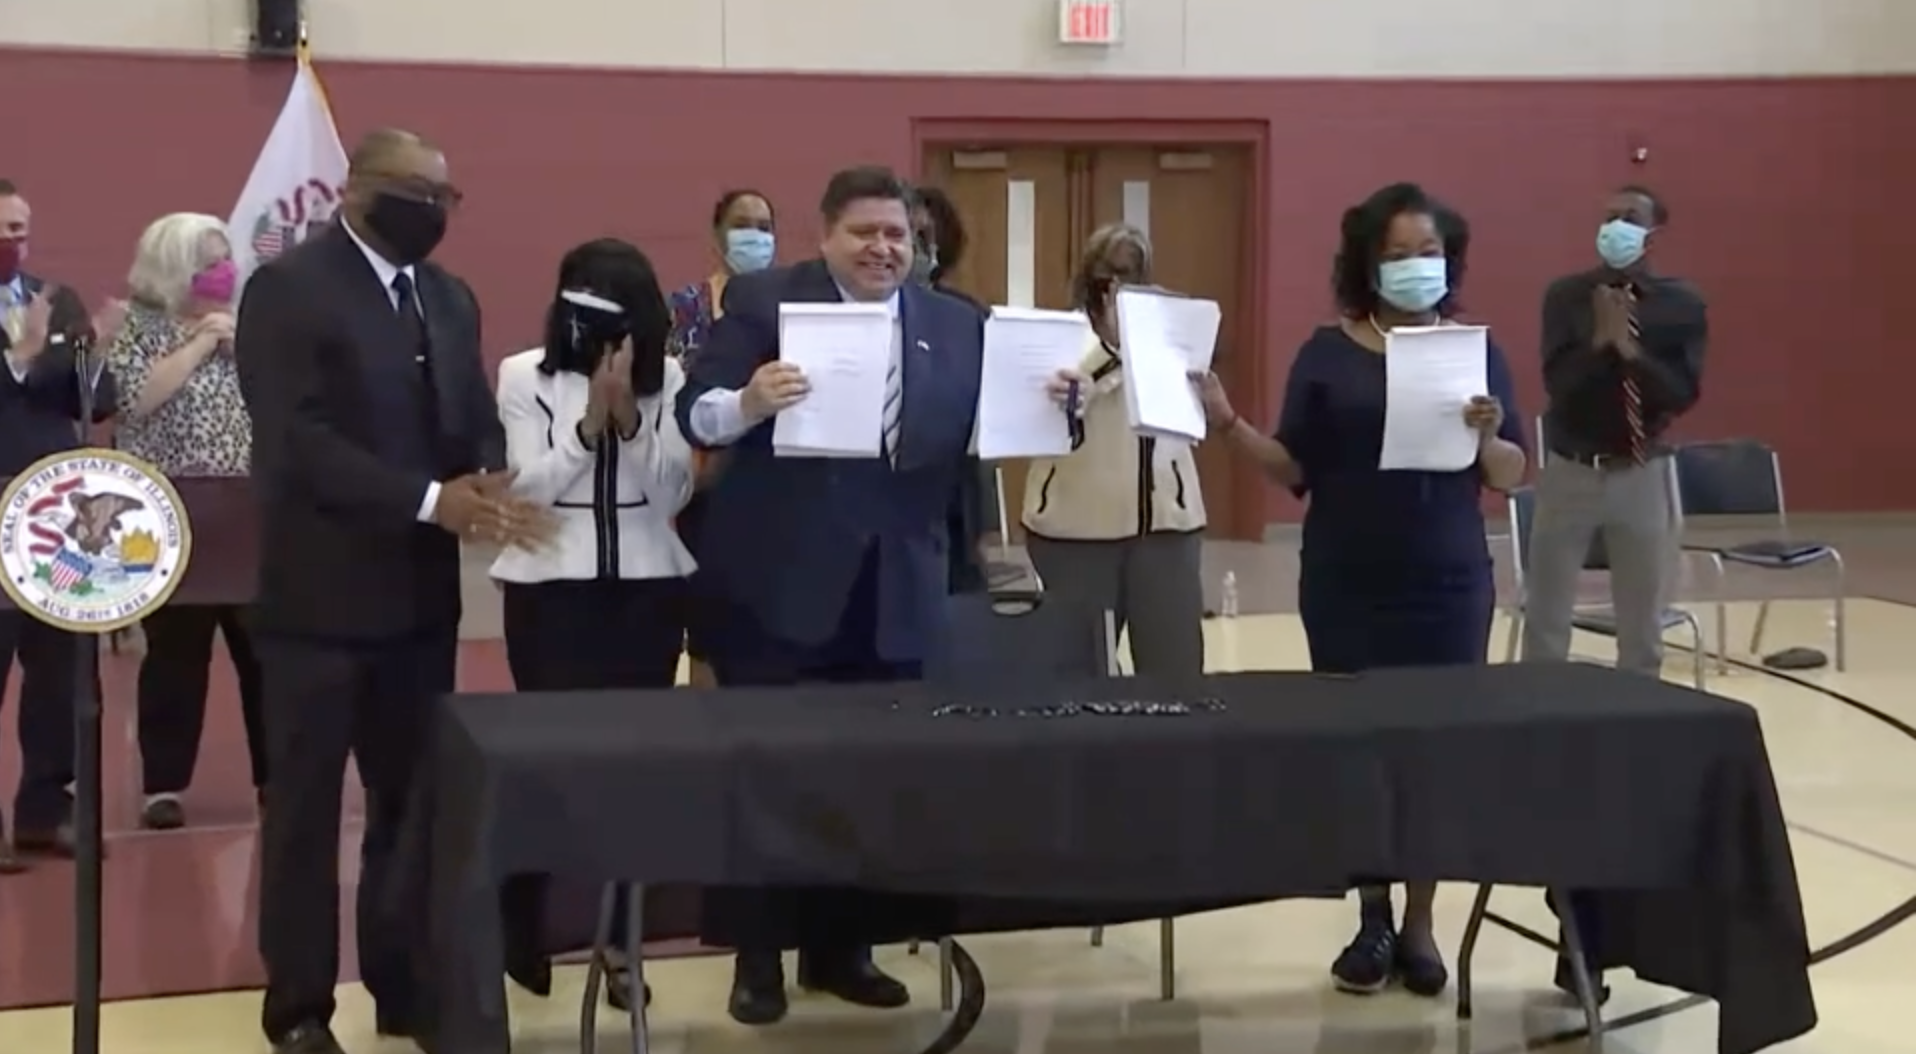 Gov. J.B. Pritzker and state Rep. Sonya Harper hold up signed legislation related to the Illinois Legislative Black Caucus' agenda addressing economic access, equity and opportunity that Pritzker signed Tuesday.